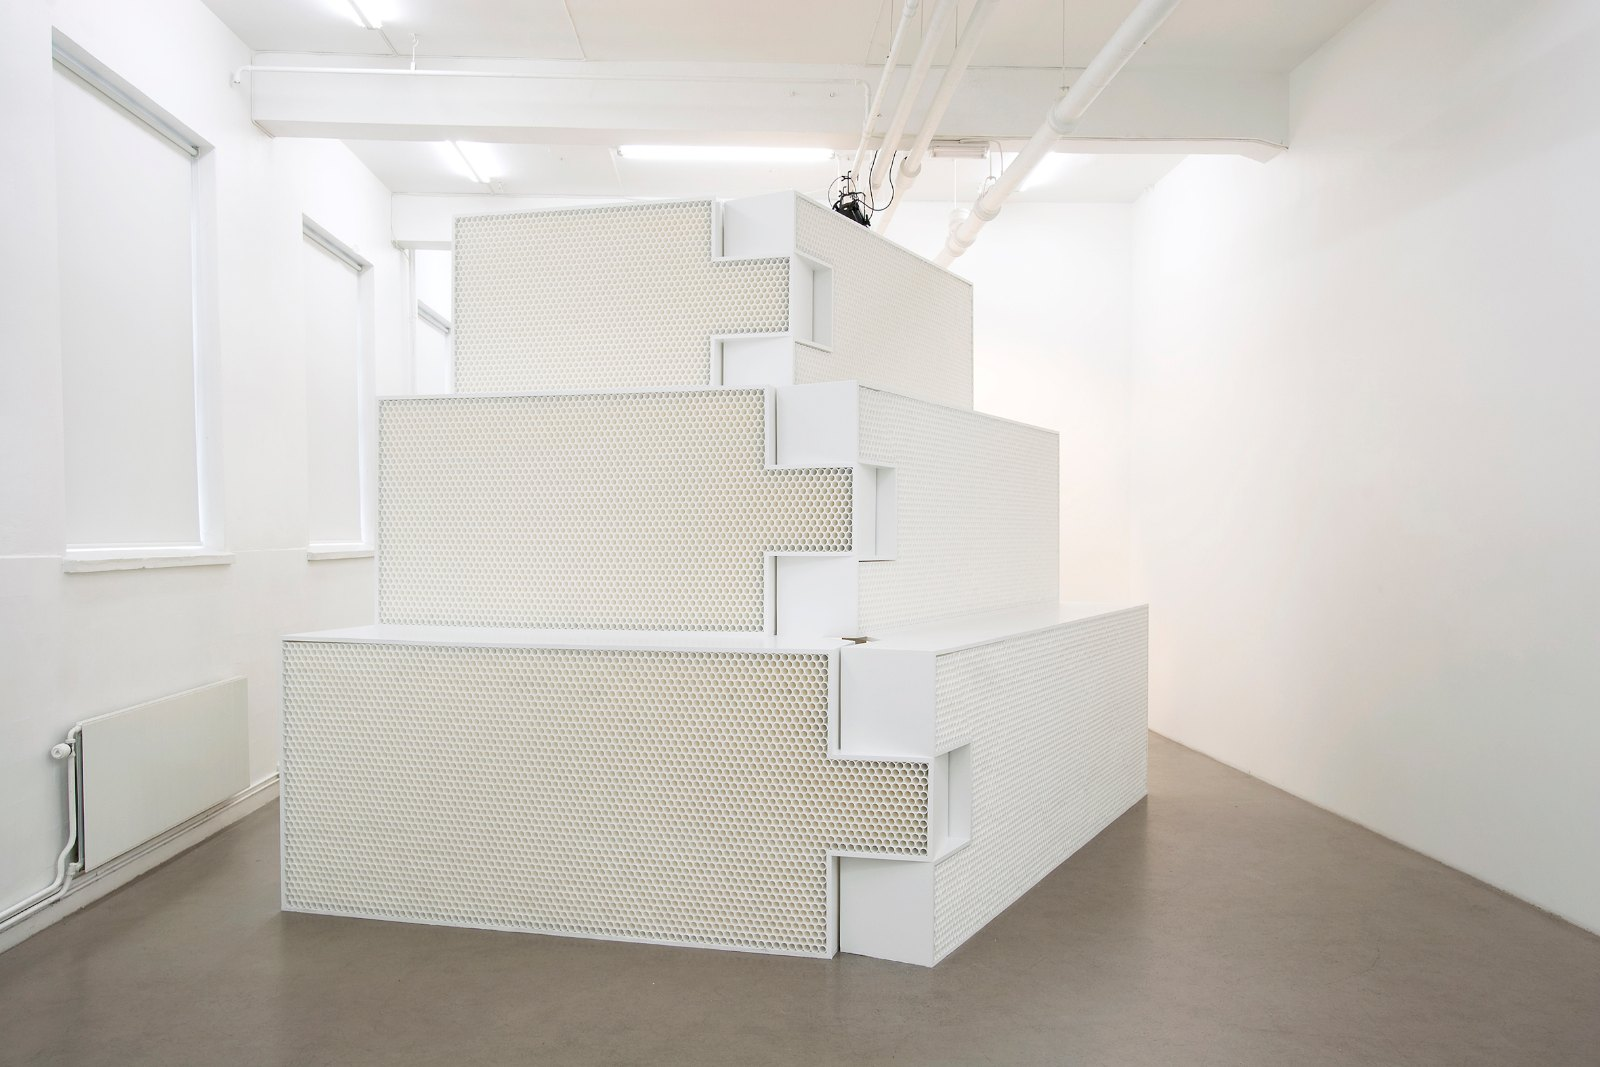 M.310, 2008, MDF boards, paint and plastic tubes, 6,5 m x 2,8 m x 3,6 m. Installation view, Marte Johnslien, 18 % Gray, 0047 Oslo, 2008